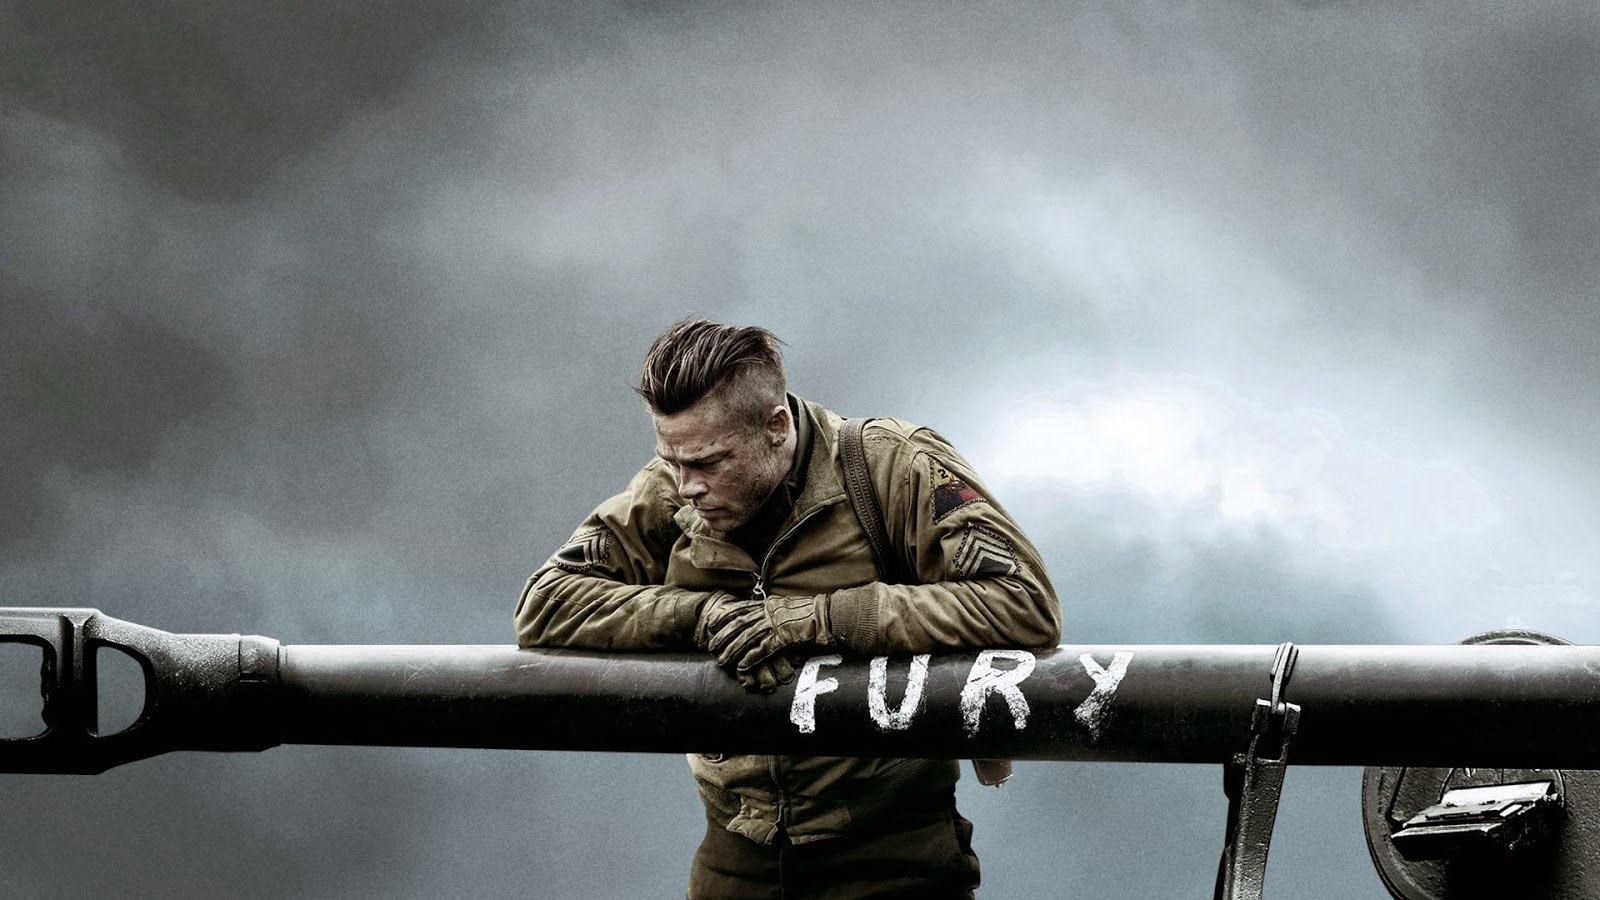 Mad Max Fury Movie Hd Wallpapers Deep Hd Wallpapers For